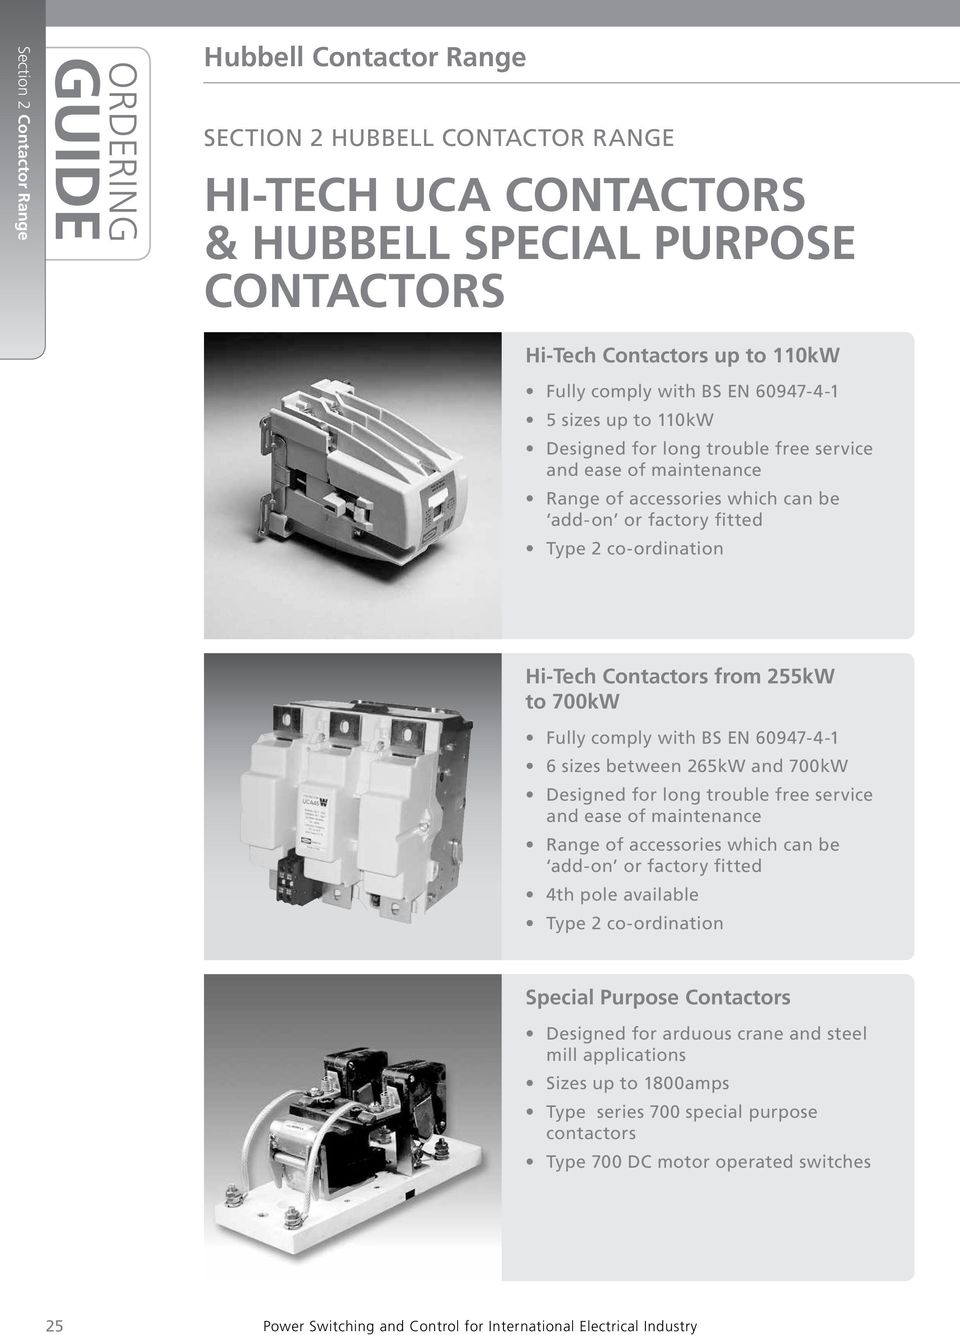 Guide Hi Tech Uca Contactors Hubbell Special Purpose Magnetic Contactor 1 Pole Relay Wiring Comply With Bs En 6094741 6 Sizes Between 265kw And Kw Designed For Long Trouble Free